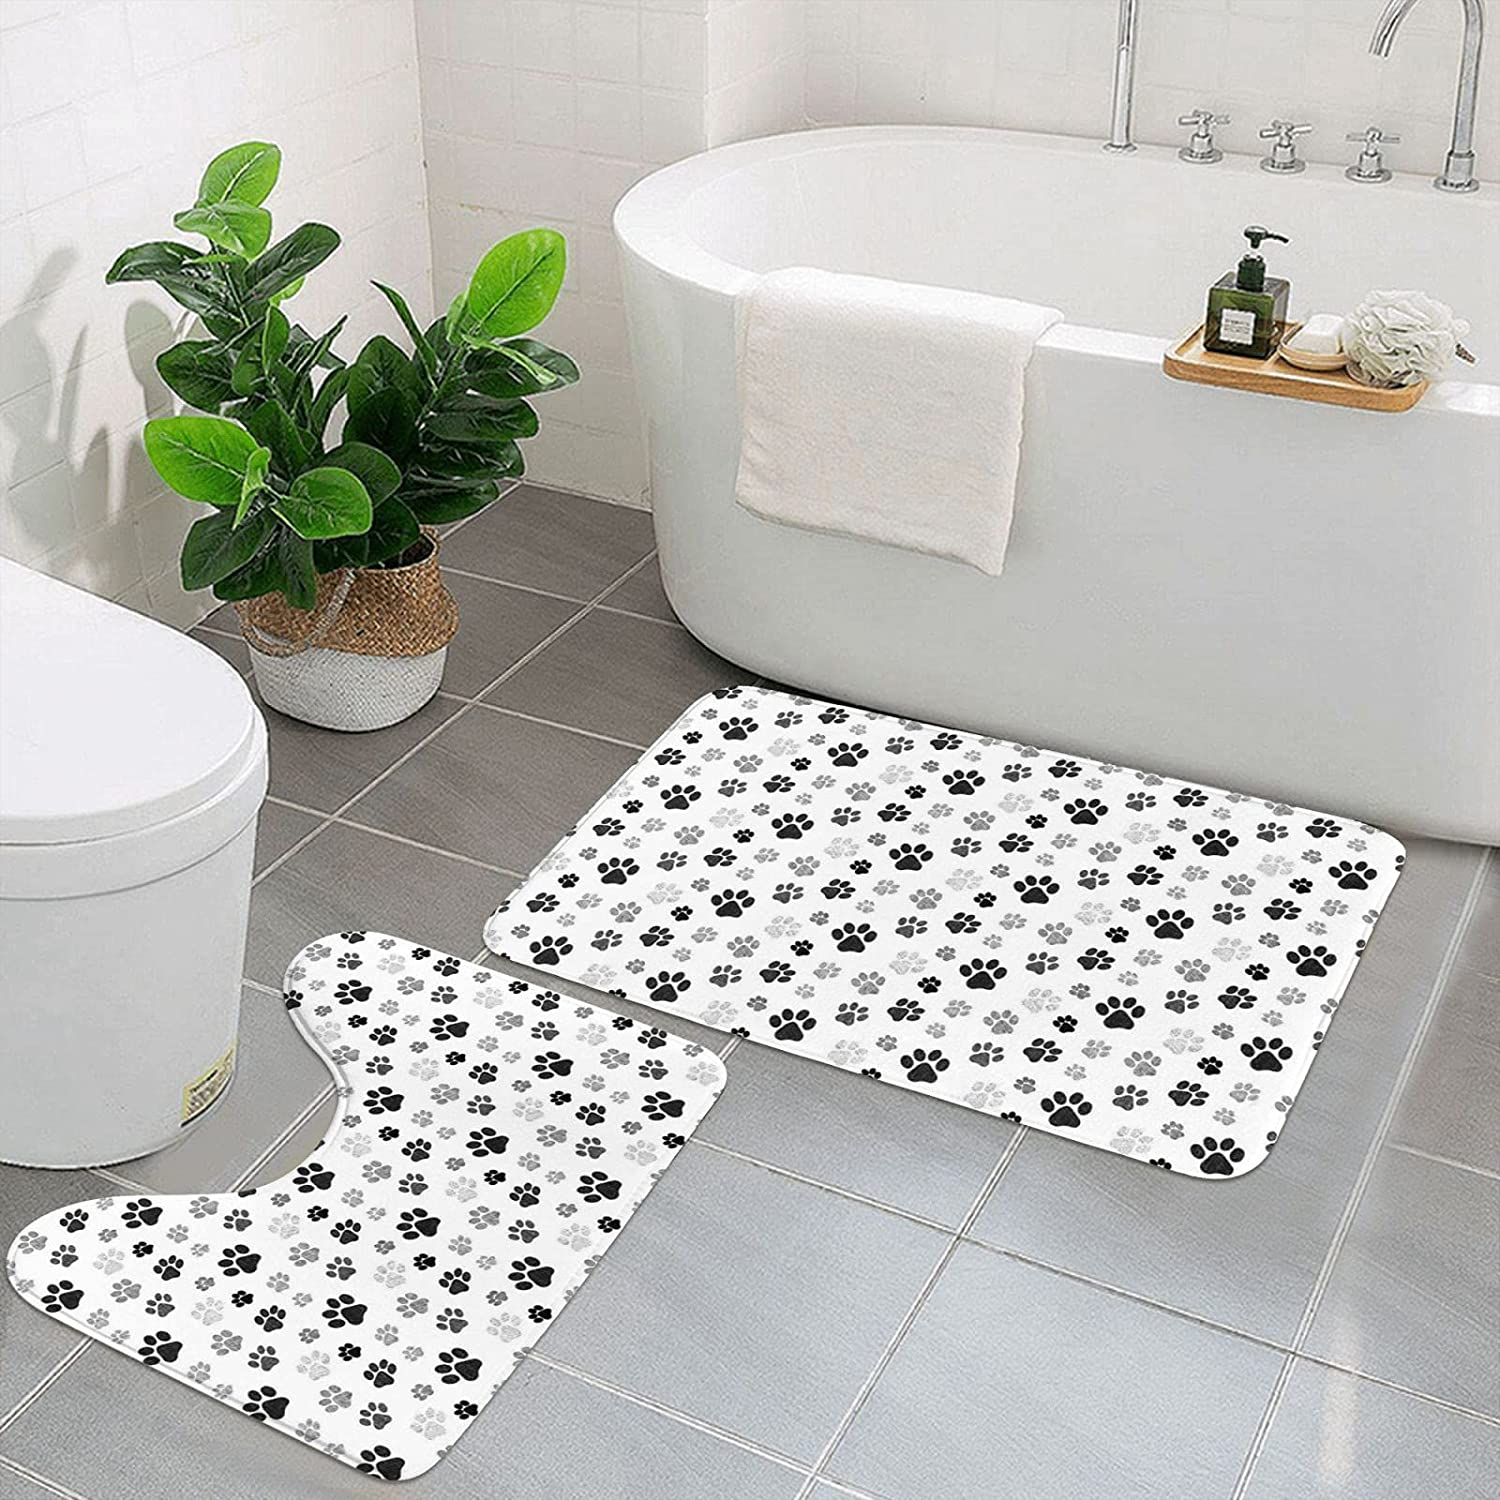 Max 73% OFF Dog Paw Bathroom Rugs and Mats Set Max 64% OFF Non-S U 2 Toilet Shape Pieces